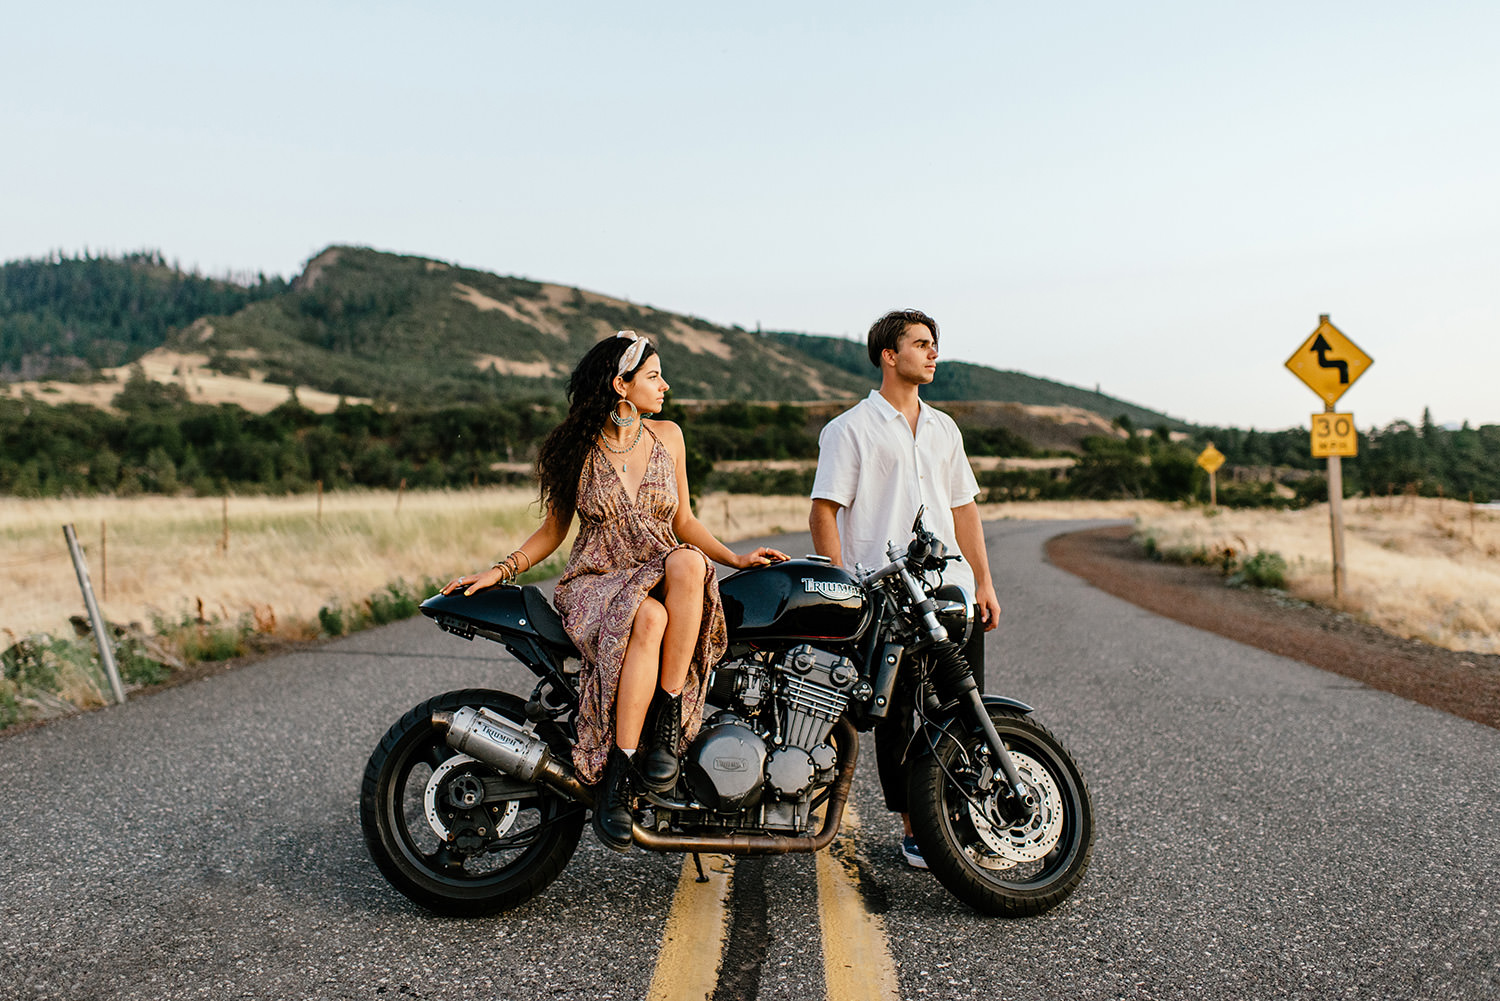 Desert-Motorcycle-engagement-photos-213.jpg